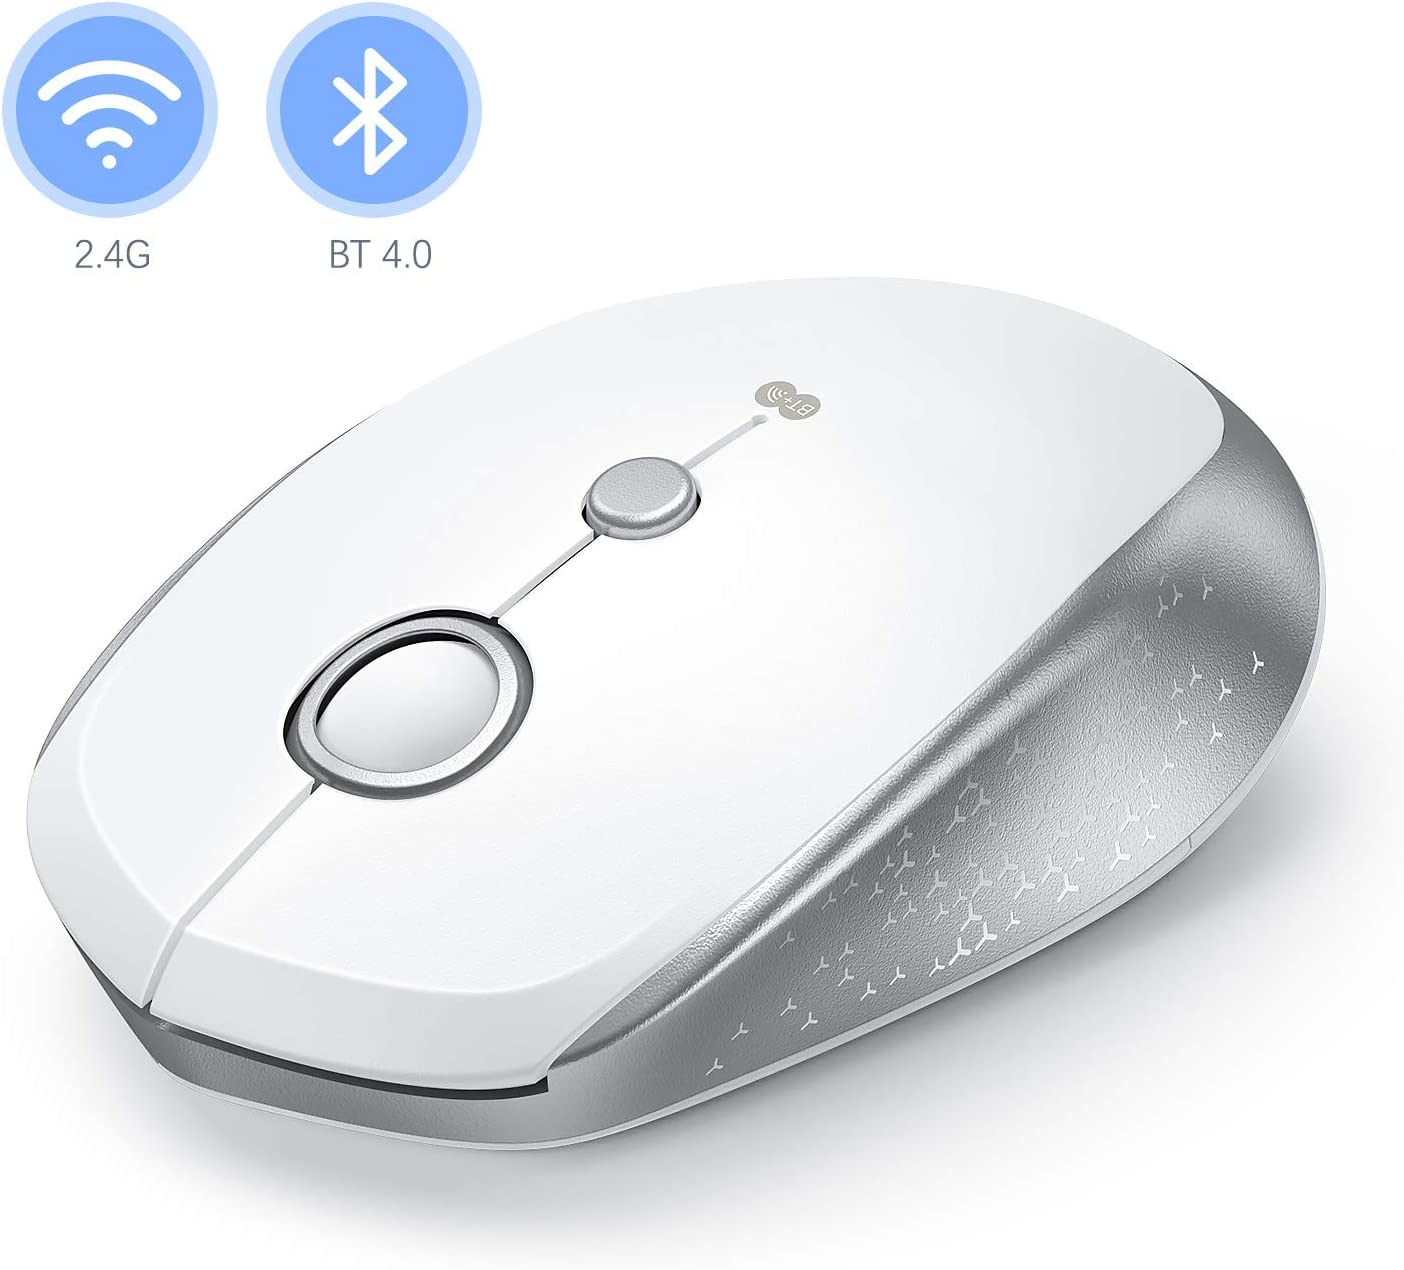 Bluetooth Wireless Mouse, Jelly Comb 2.4GHz Wireless Bluetooth Mouse Dual Mode Portable Mobile Mouse with USB Receiver, 3 Adjustable DPI Level for Laptop, MacBook, PC, Windows, Android, OS System